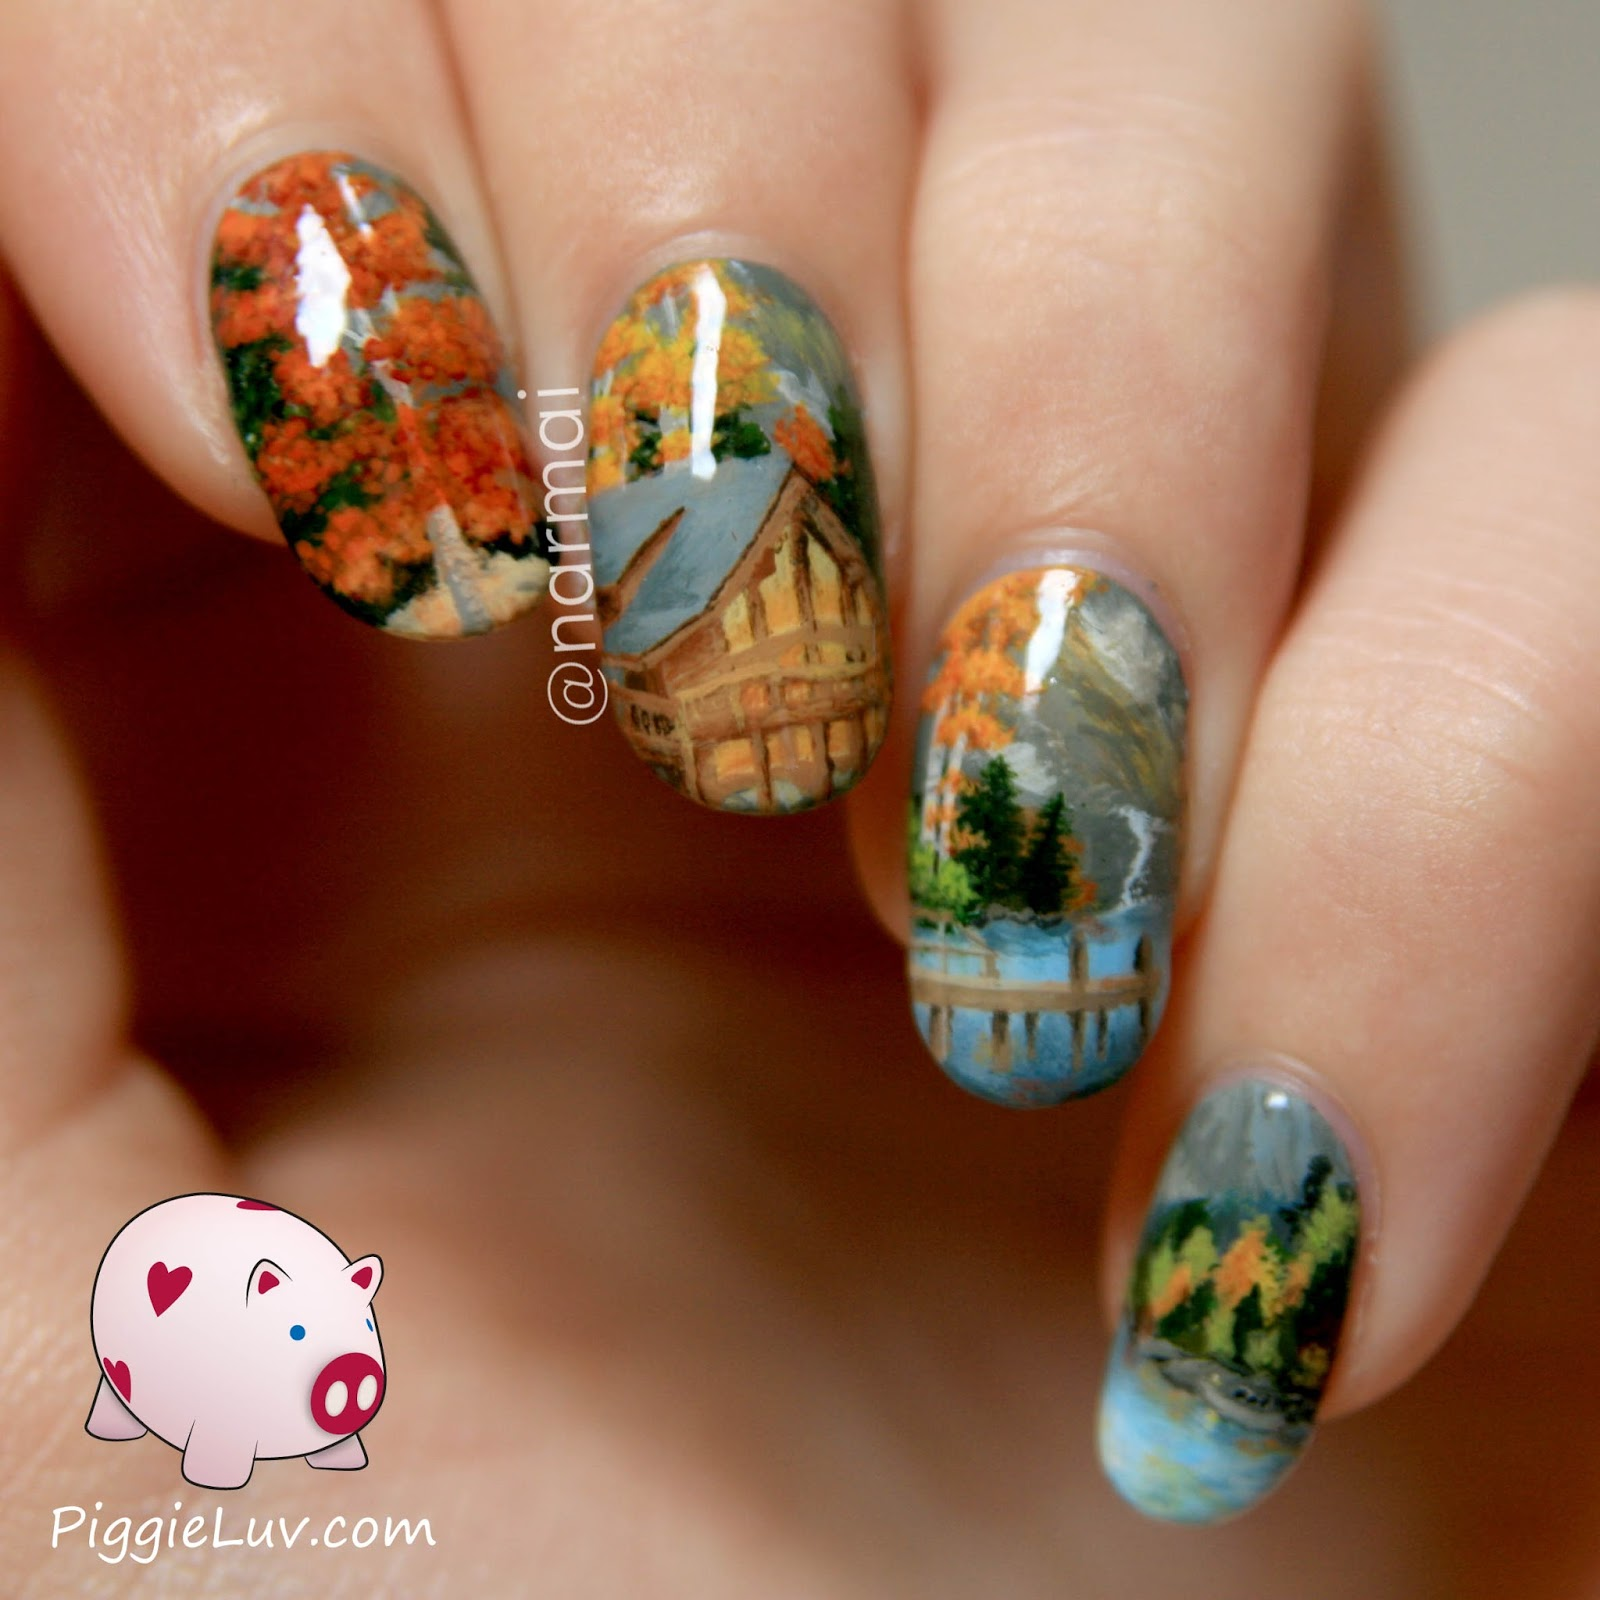 Piggieluv 3d Pull The Curtain Nail Art: ALIQUID: November's Museum-Worthy Manis